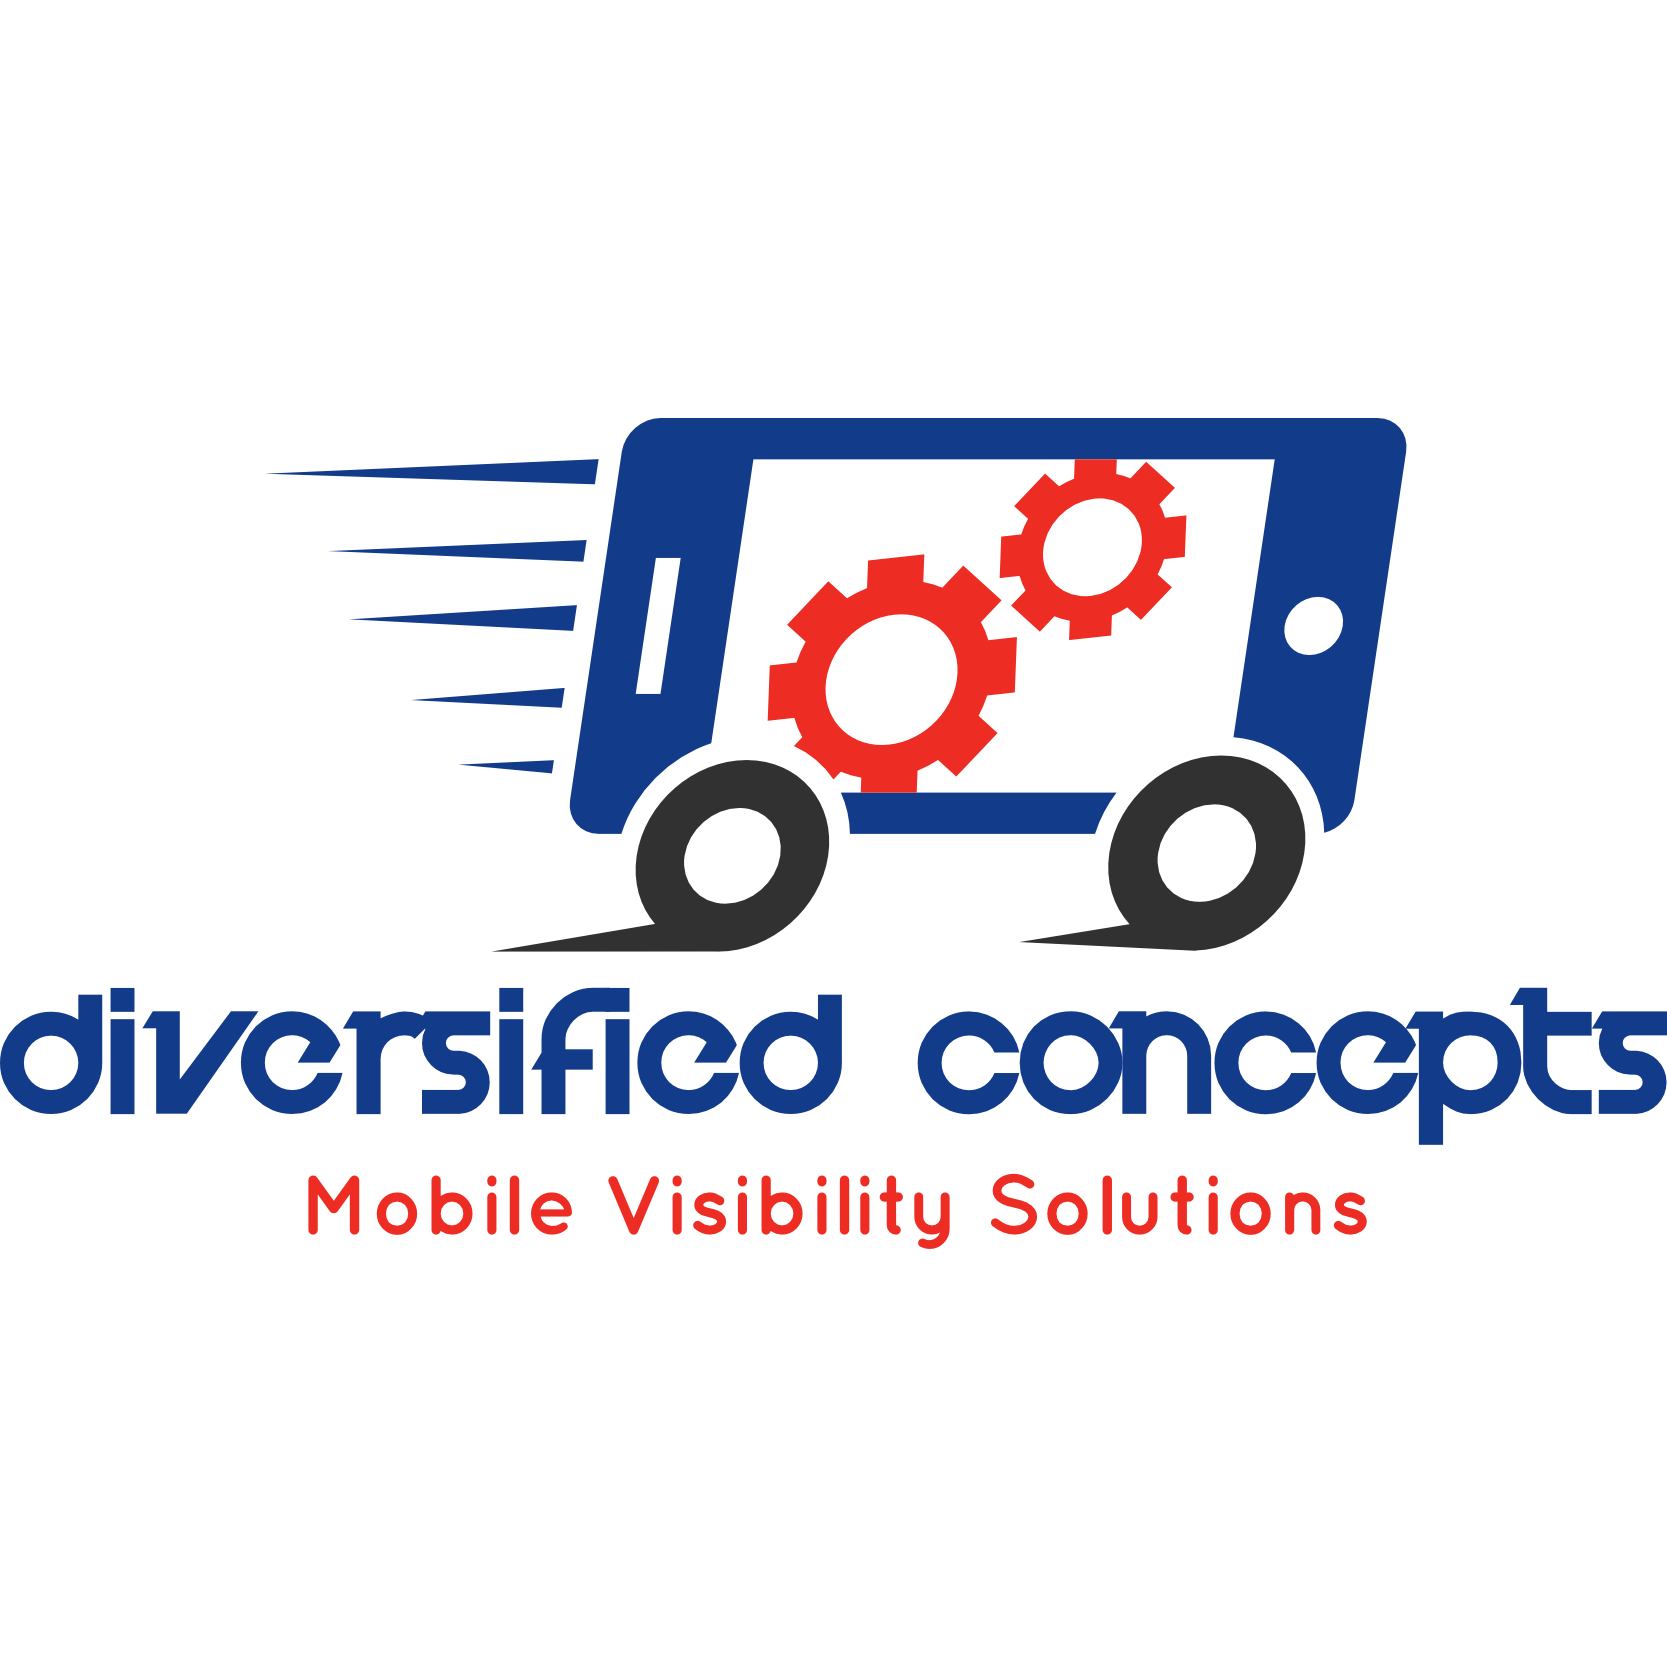 Diversified Concepts